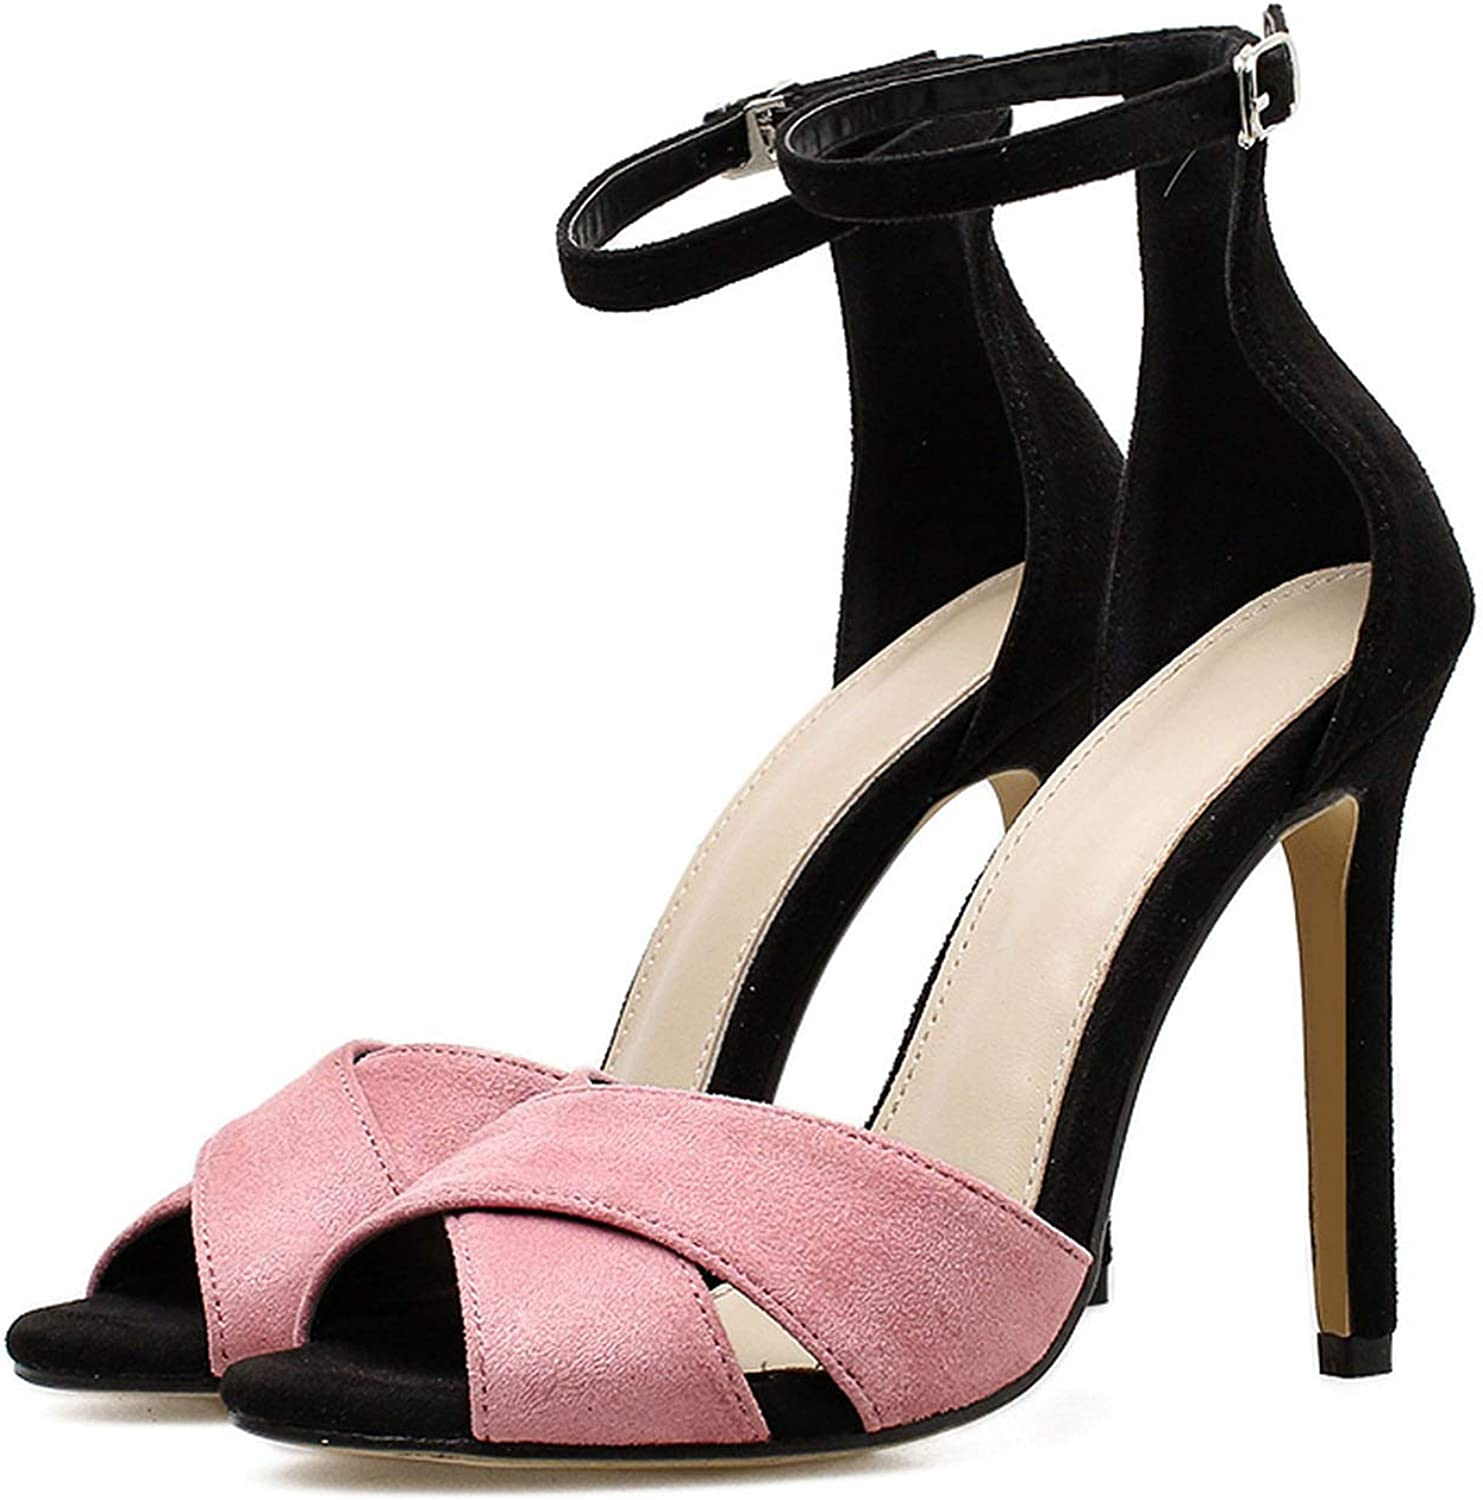 NorthEsther 2019 on Women 11.5cm High Heels Buckle Strap Peep Toe Sandals Fe Pink Stiletto s